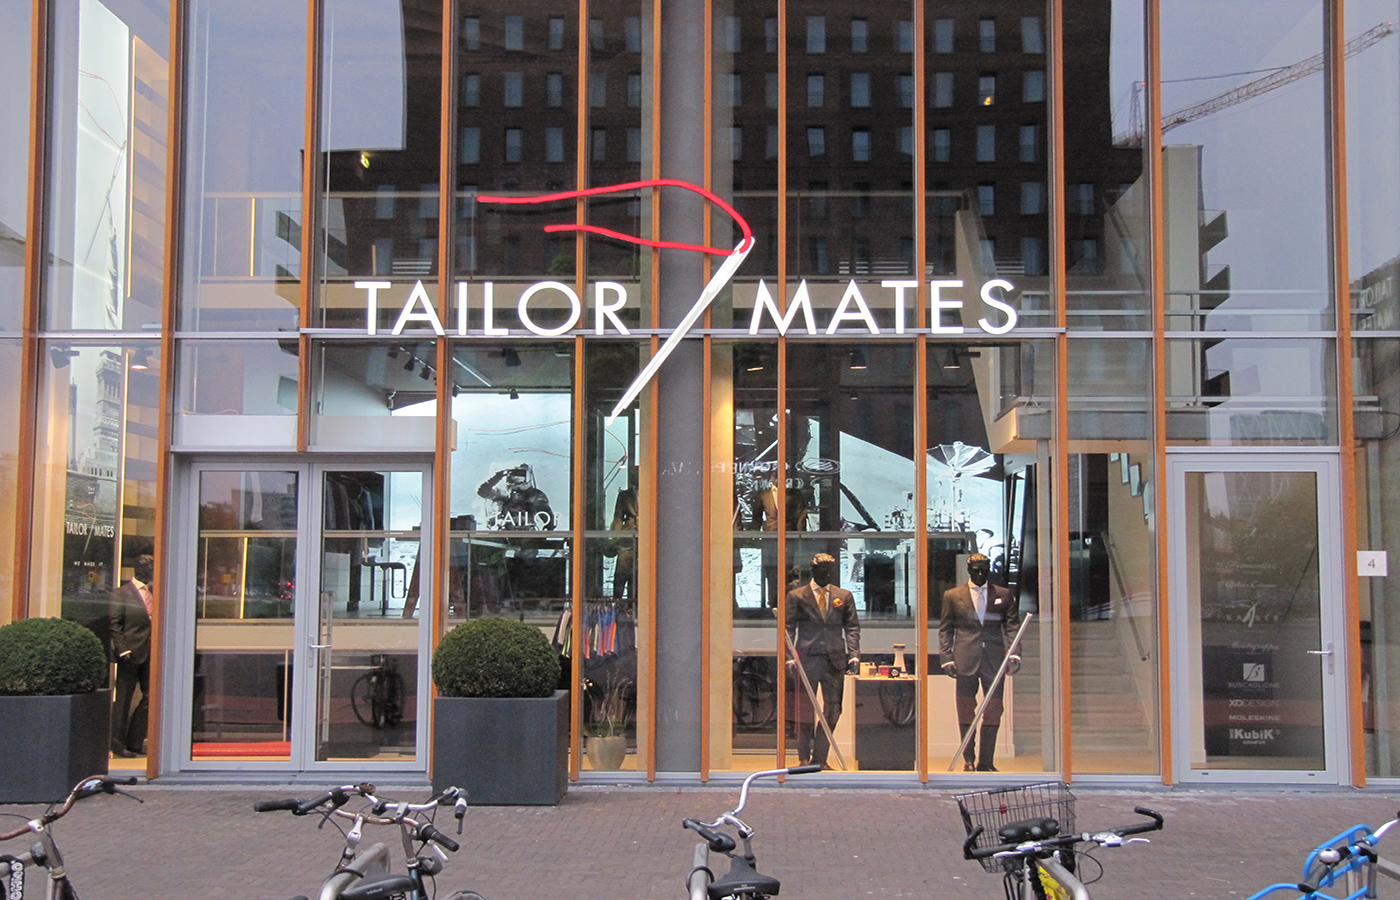 LEDSign project: Tailor Mates